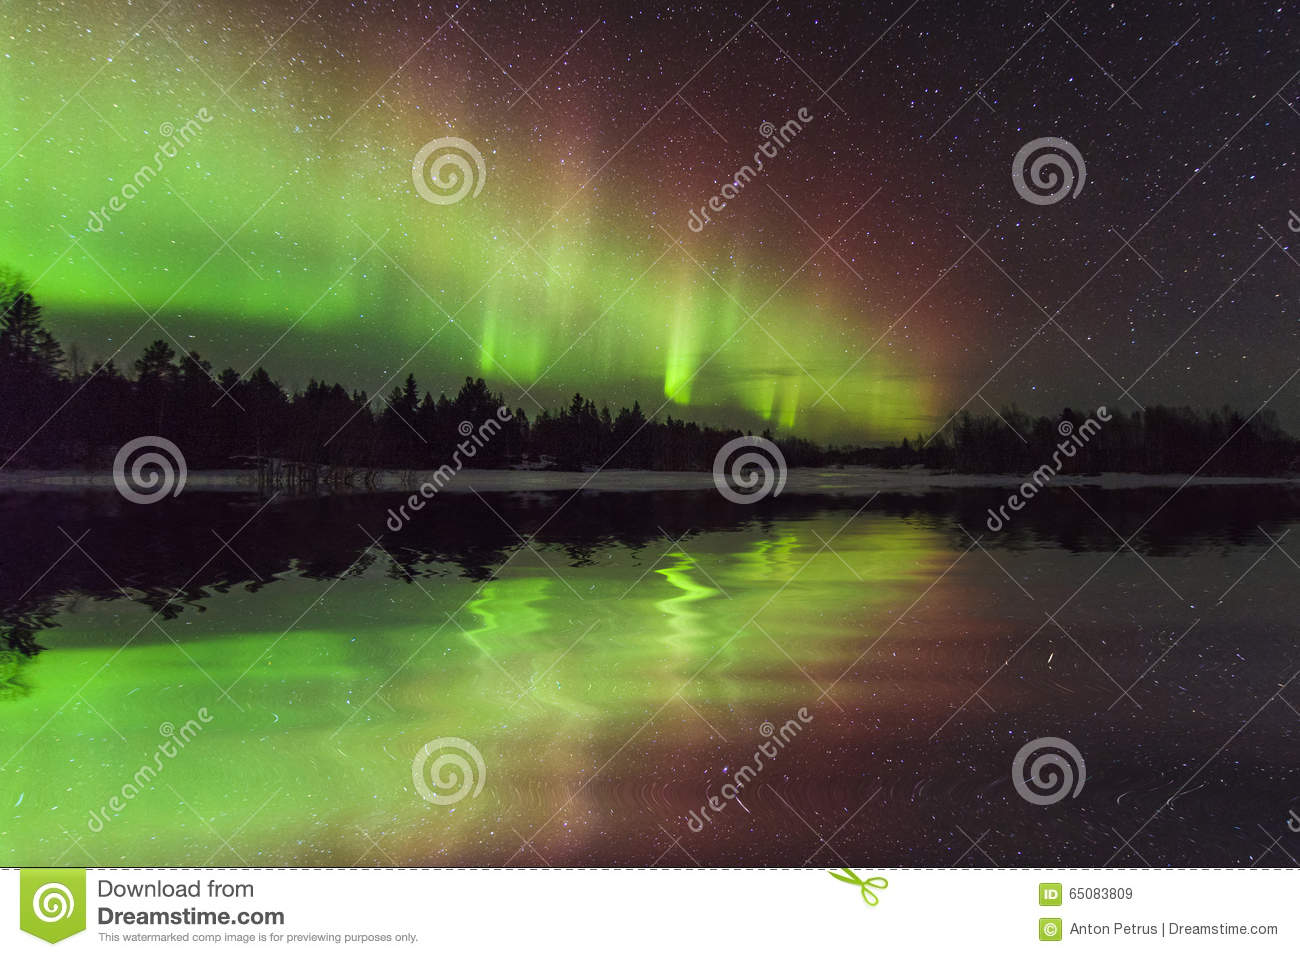 Amazing winter landscape with northern lights